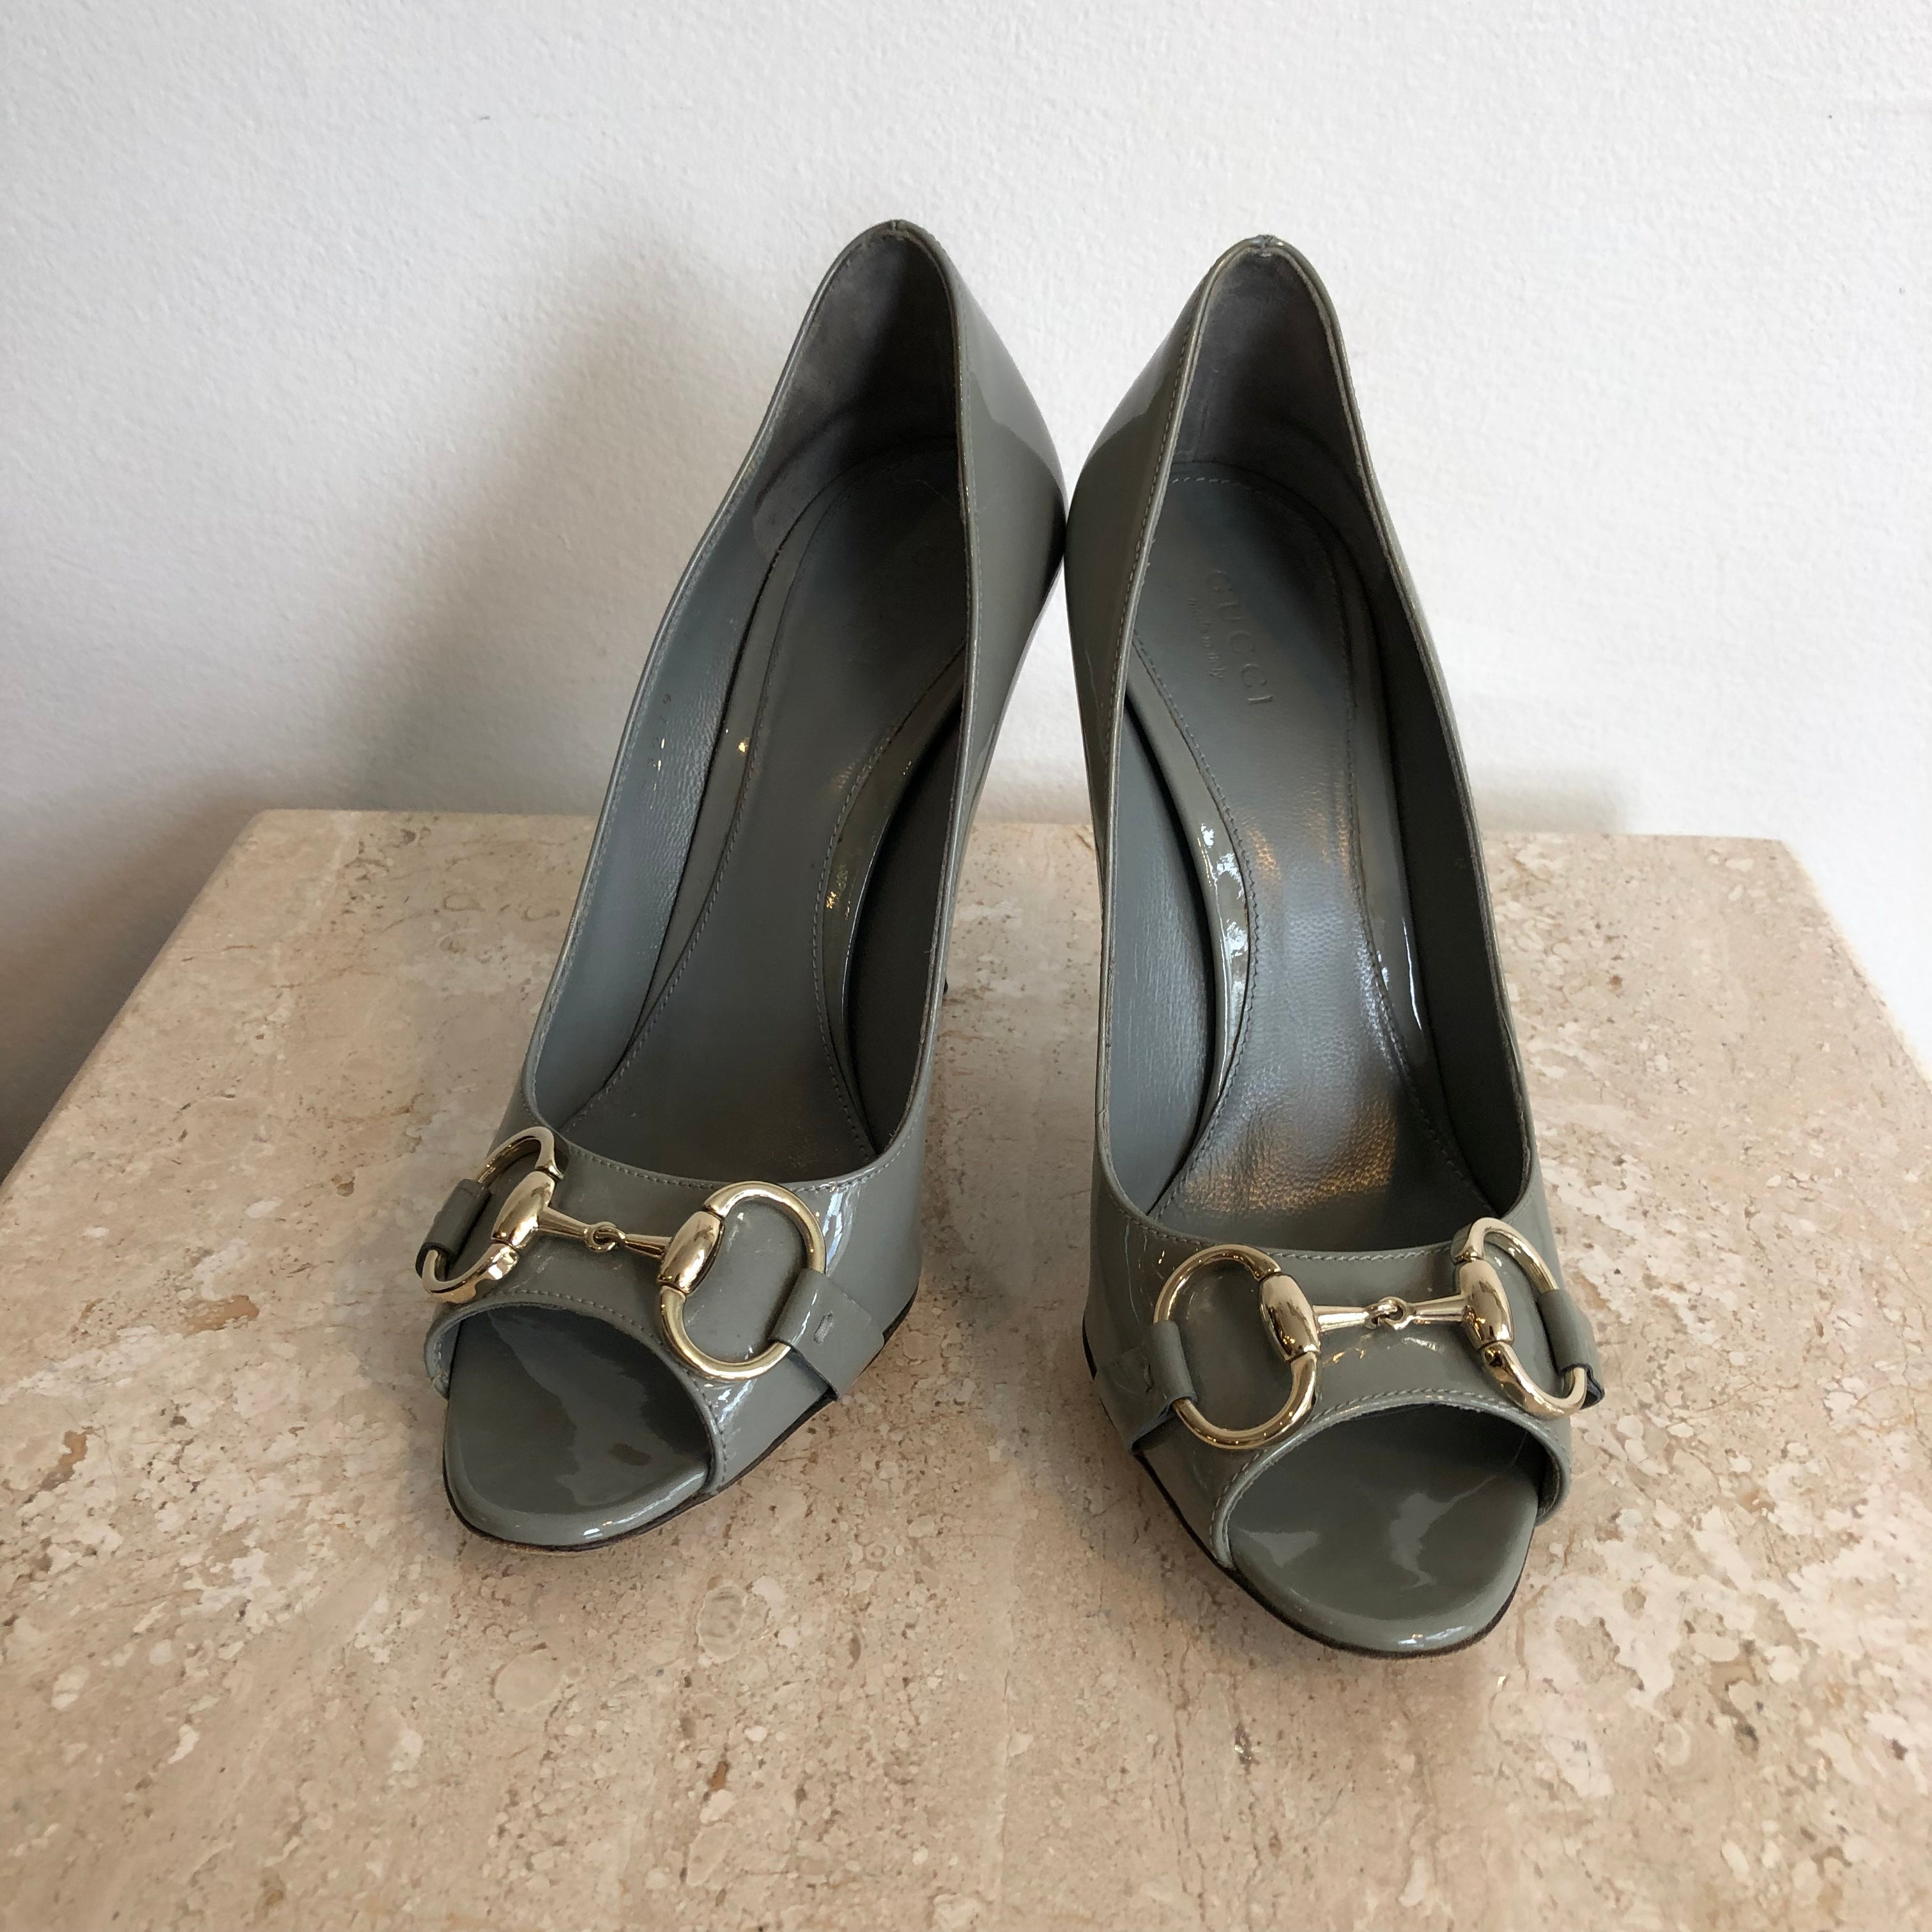 Authentic GUCCI Grey Patent - 7 - Peeptoe Pumps